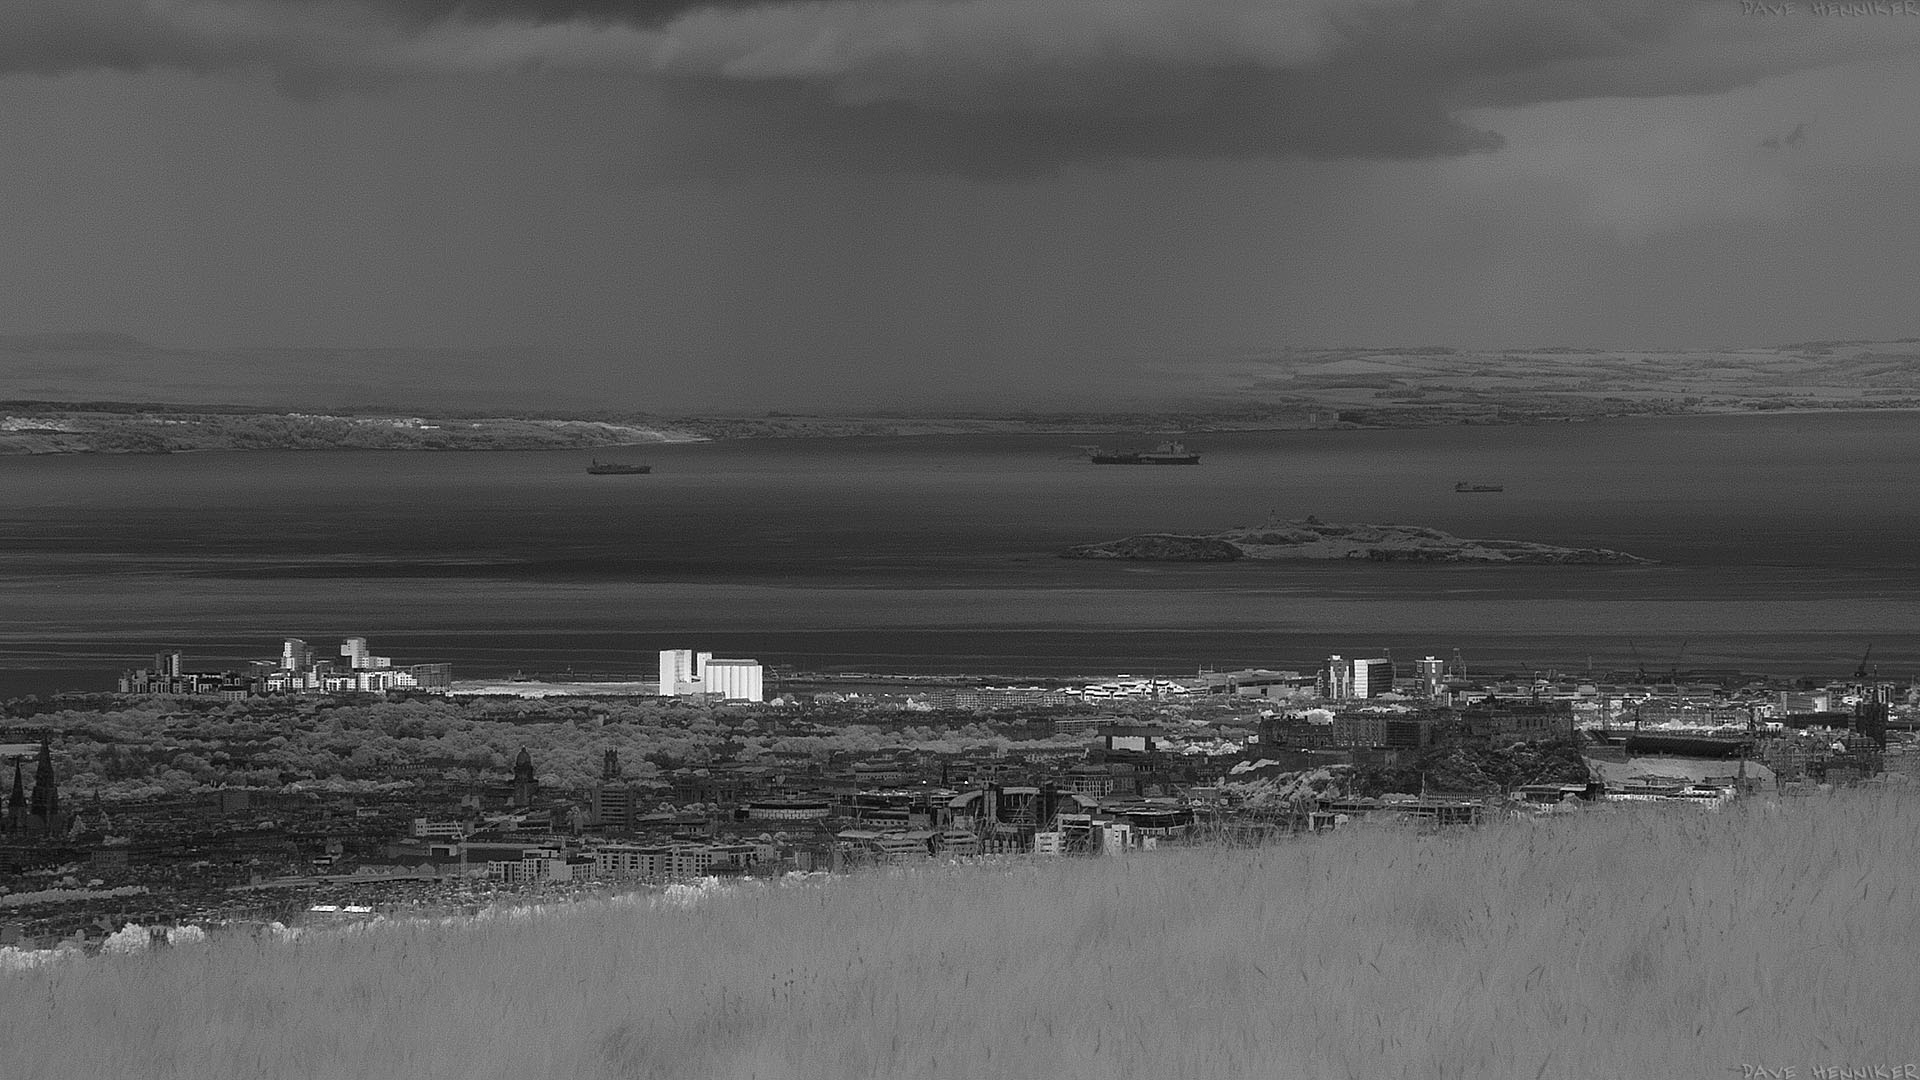 Sunny Leith! This large, wallpaper-sized infrared photo features Western Harbour, the Chancelot Flour Mill, Ocean Terminal, Persevere Court and Citadel Court in the sunshine. In the gloomier parts of the picture various Edinburgh landmarks are visible including Edinburgh Castle. It's raining in Fife.